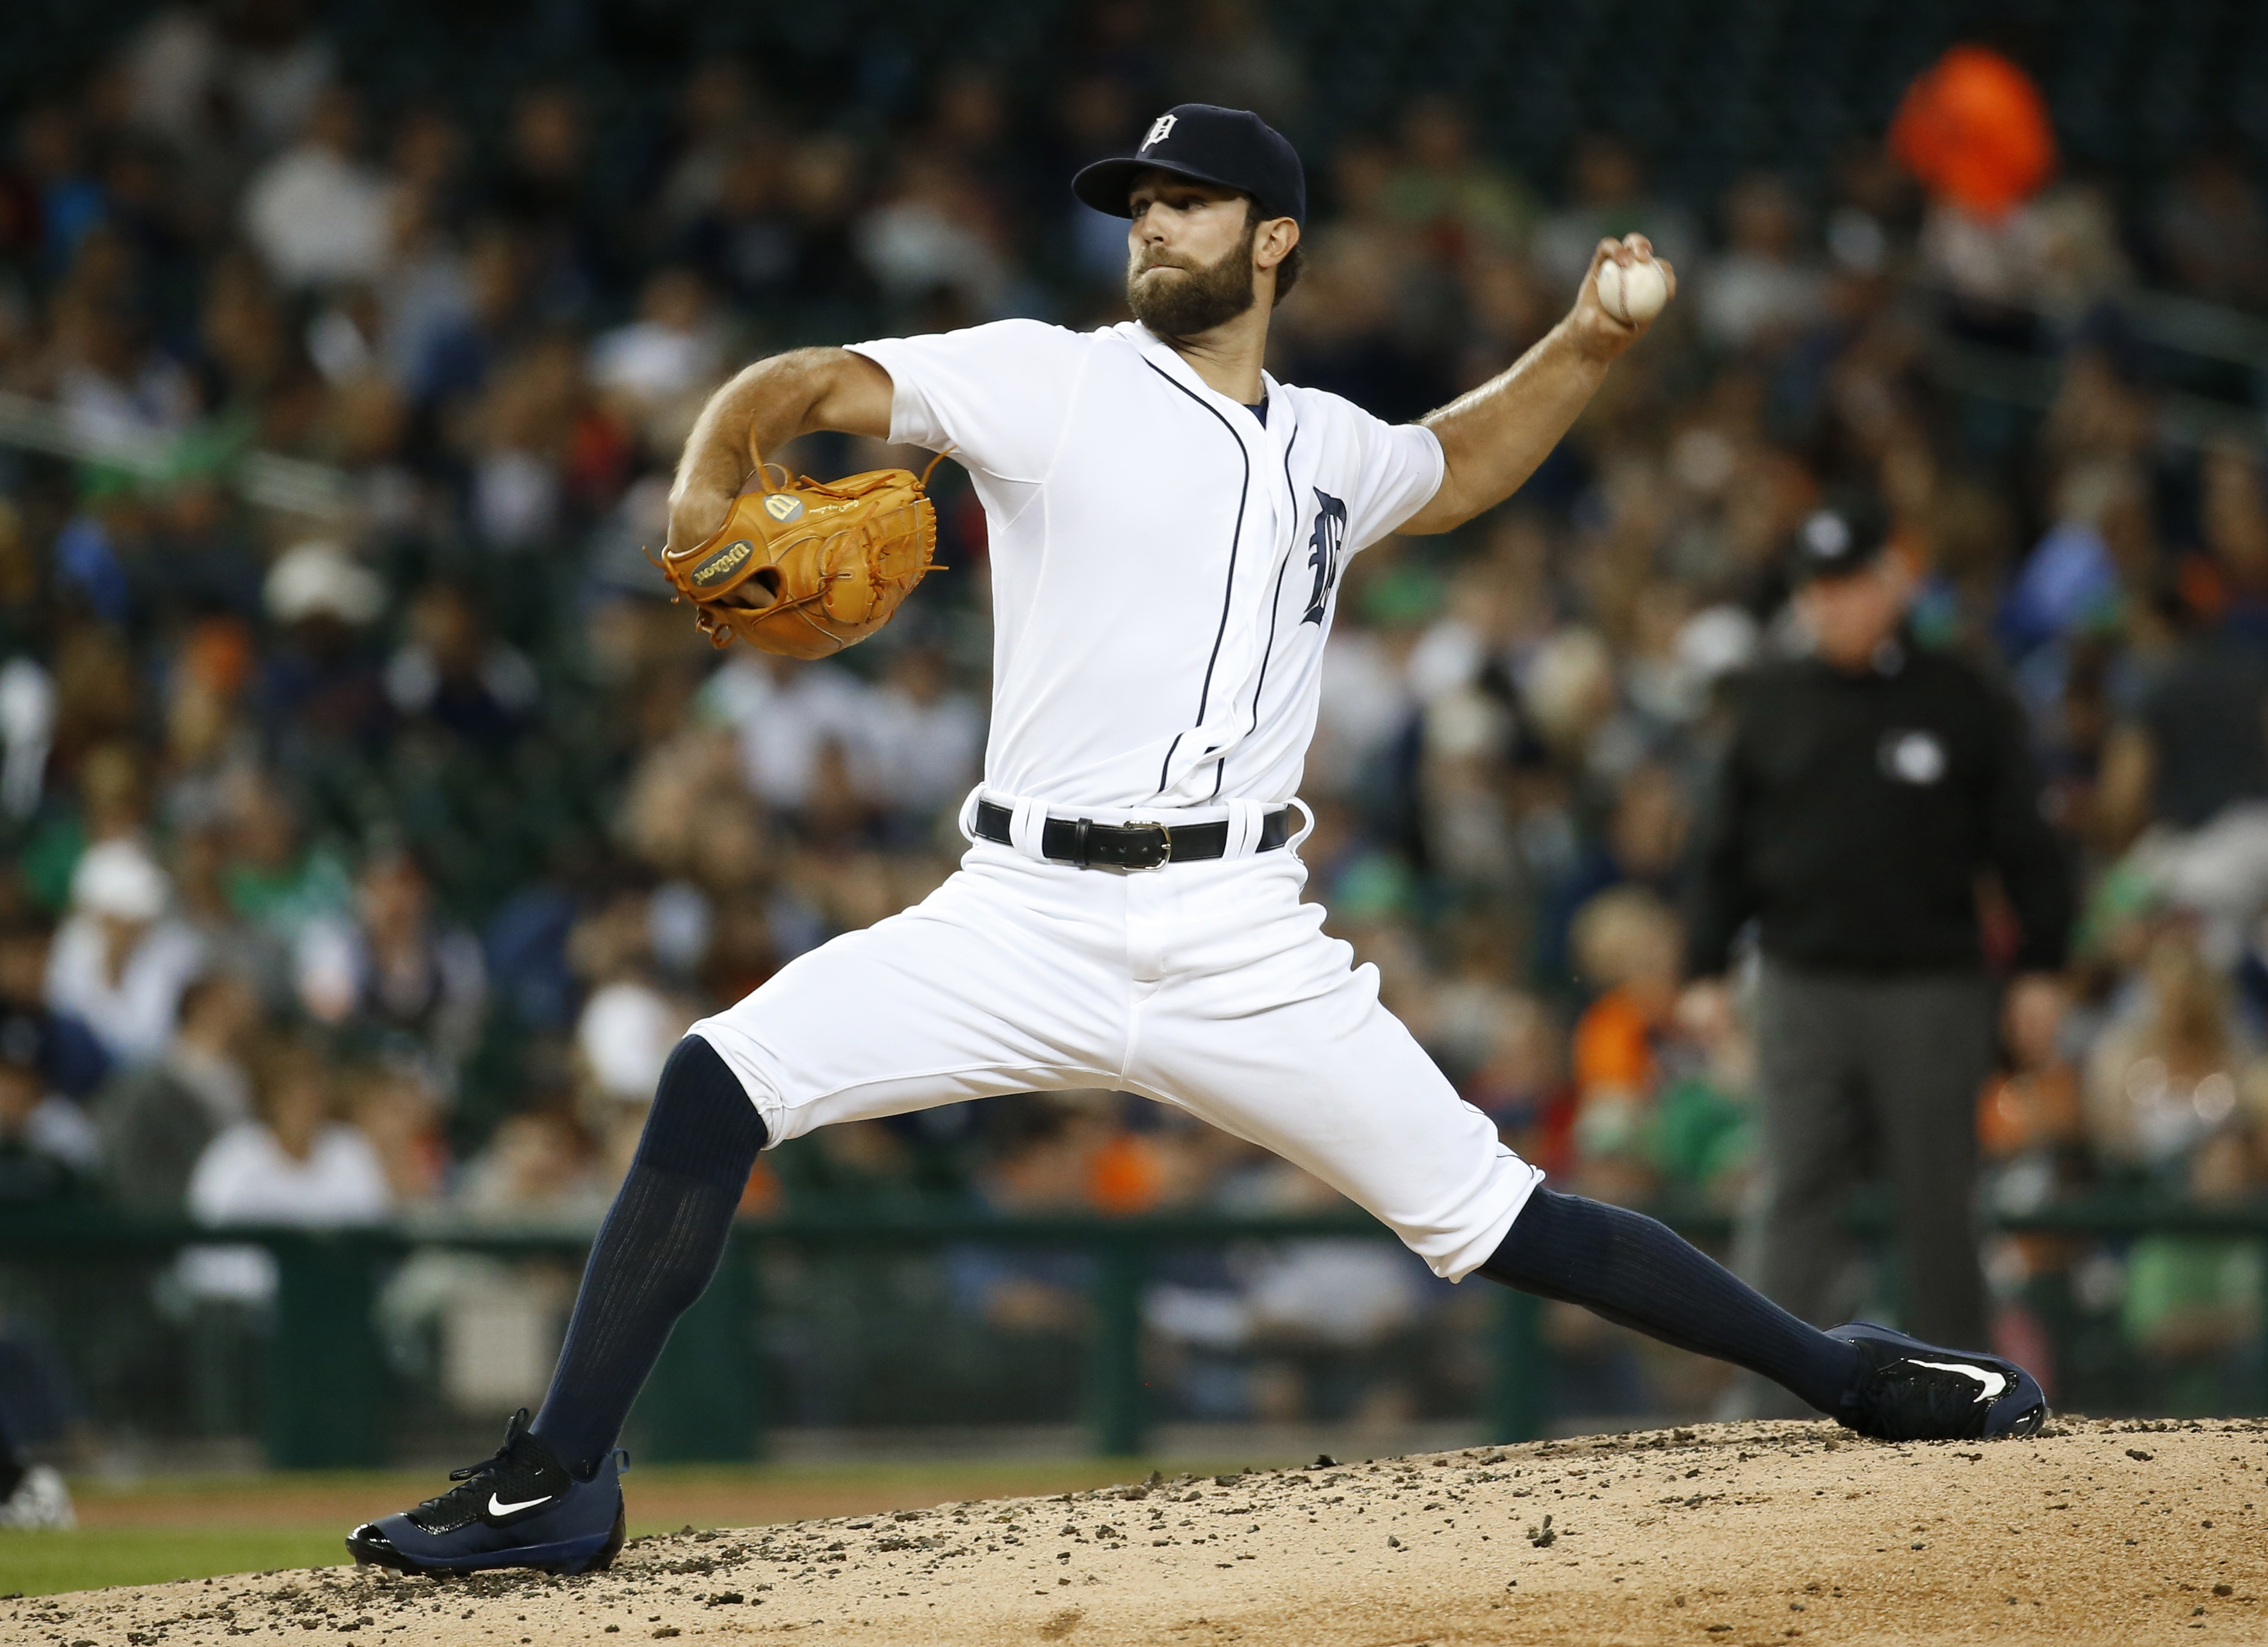 Detroit Tigers pitcher Daniel Norris throws against the Chicago White Sox in the fourth inning of a baseball game in Detroit Tuesday, Sept. 22, 2015. (AP Photo/Paul Sancya)